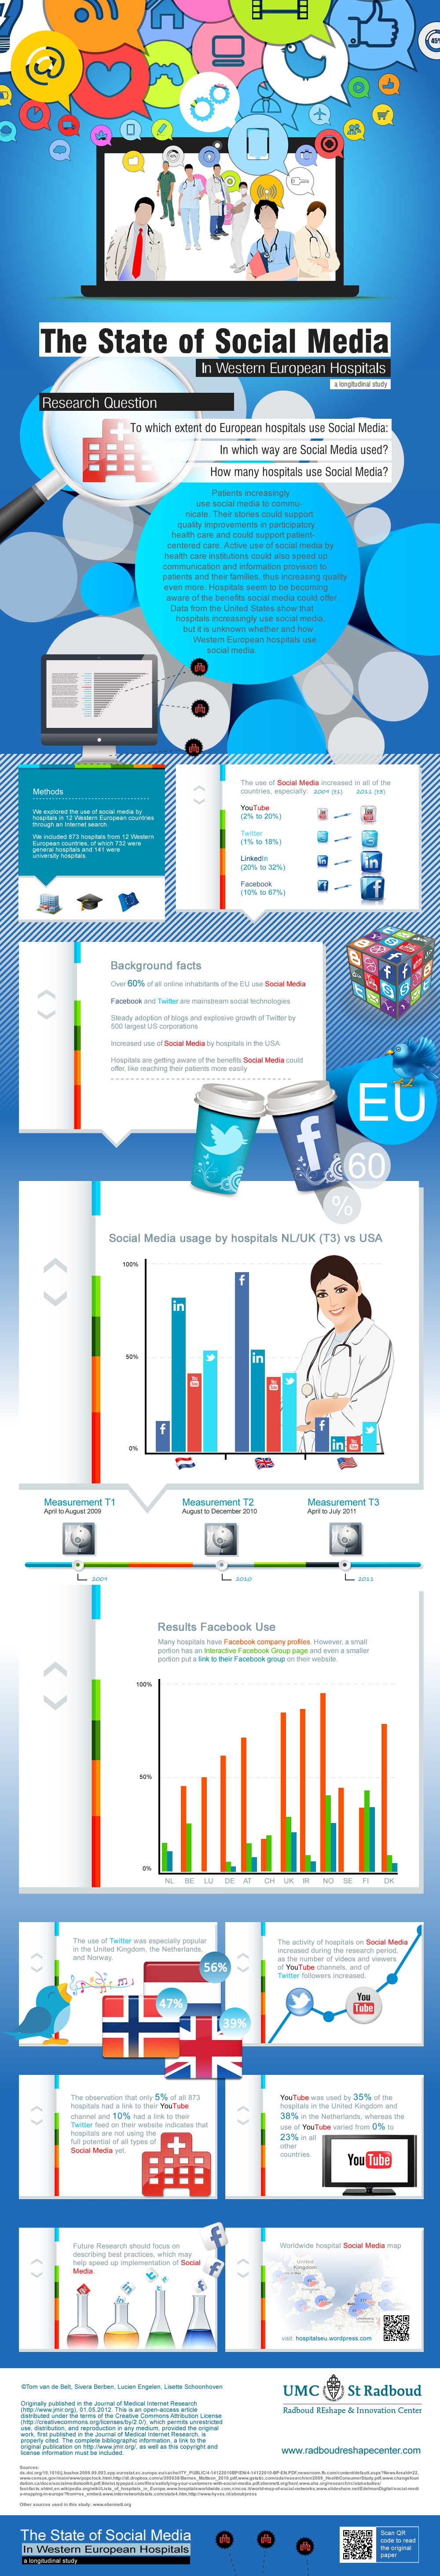 The State of Hospital Social Media Adoption: USA vs. Western Europe Infographic